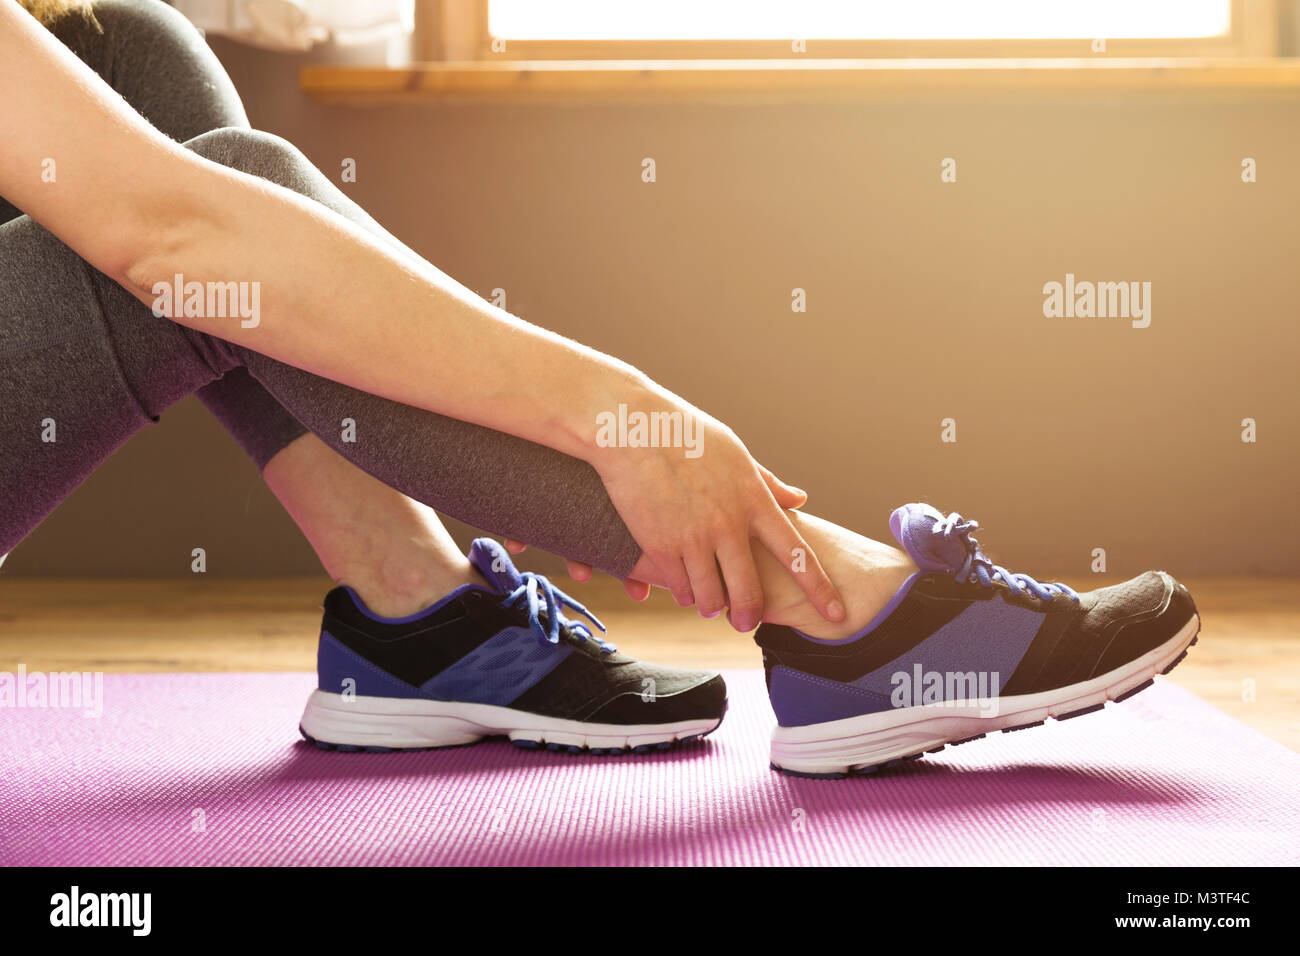 Young woman suffering from an ankle injury while exercising. Sport exercise injuries concept. - Stock Image